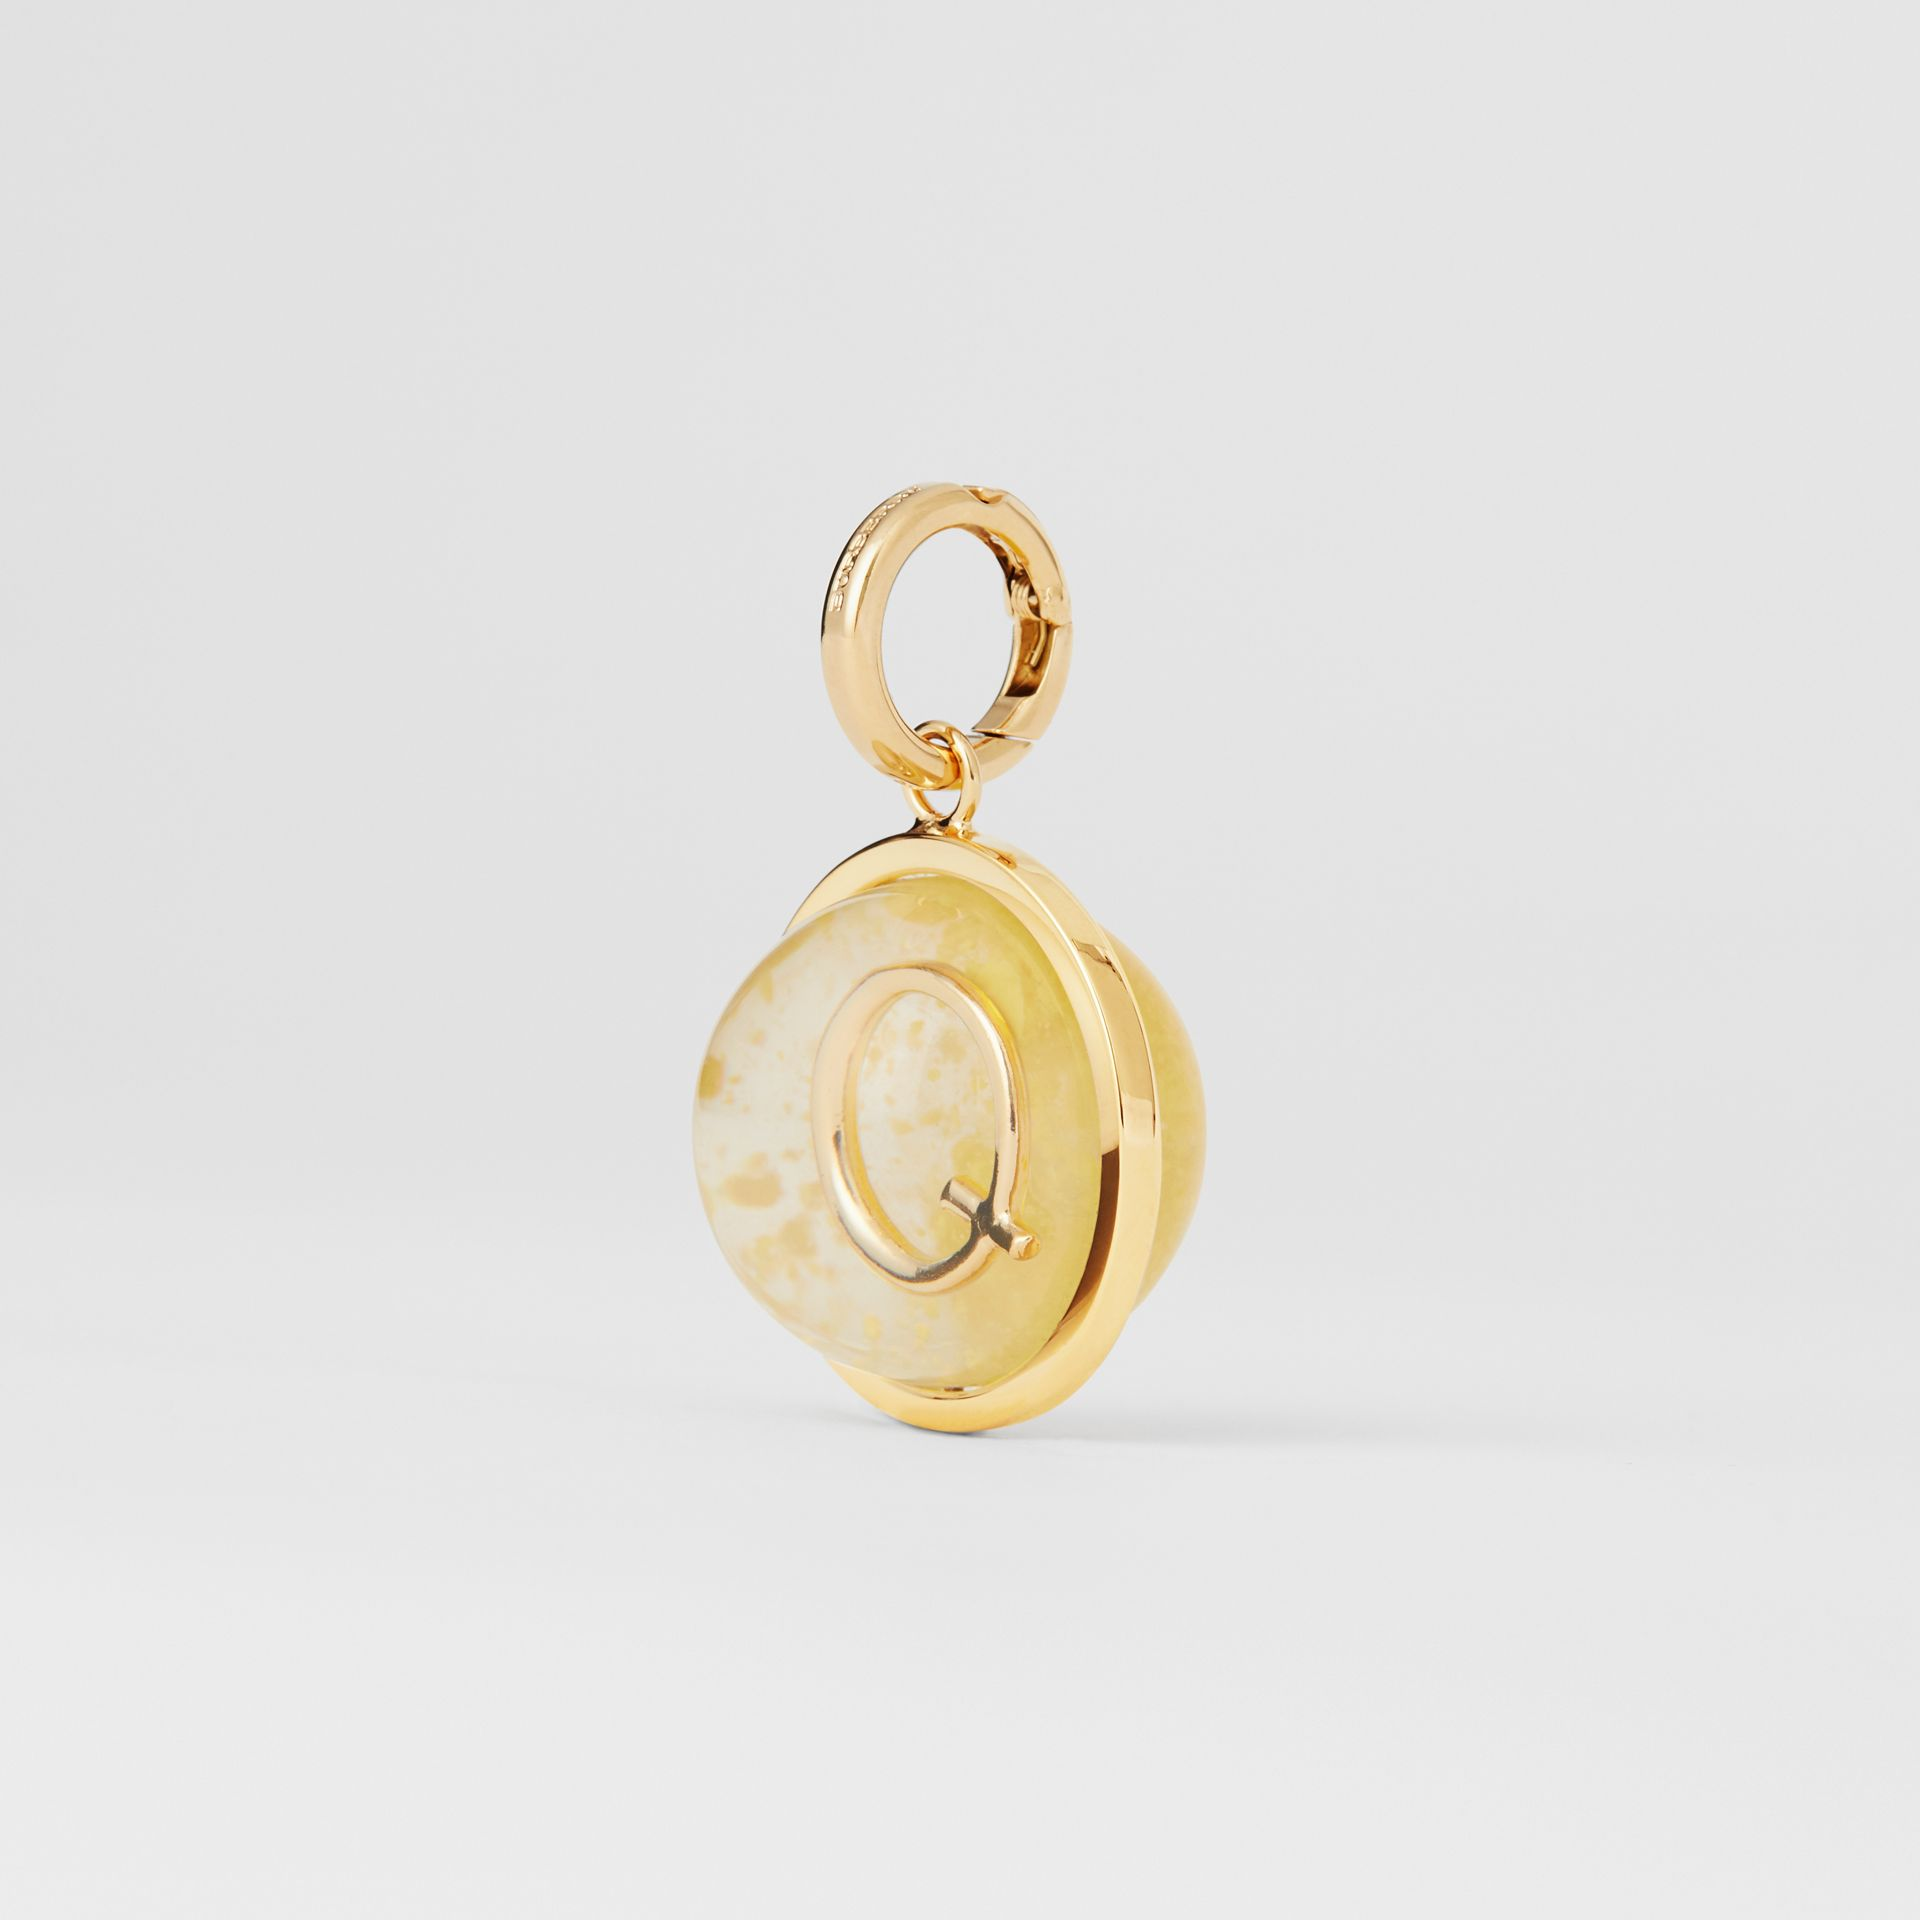 Marbled Resin 'Q' Alphabet Charm in Gold/mimosa - Women | Burberry United States - gallery image 4